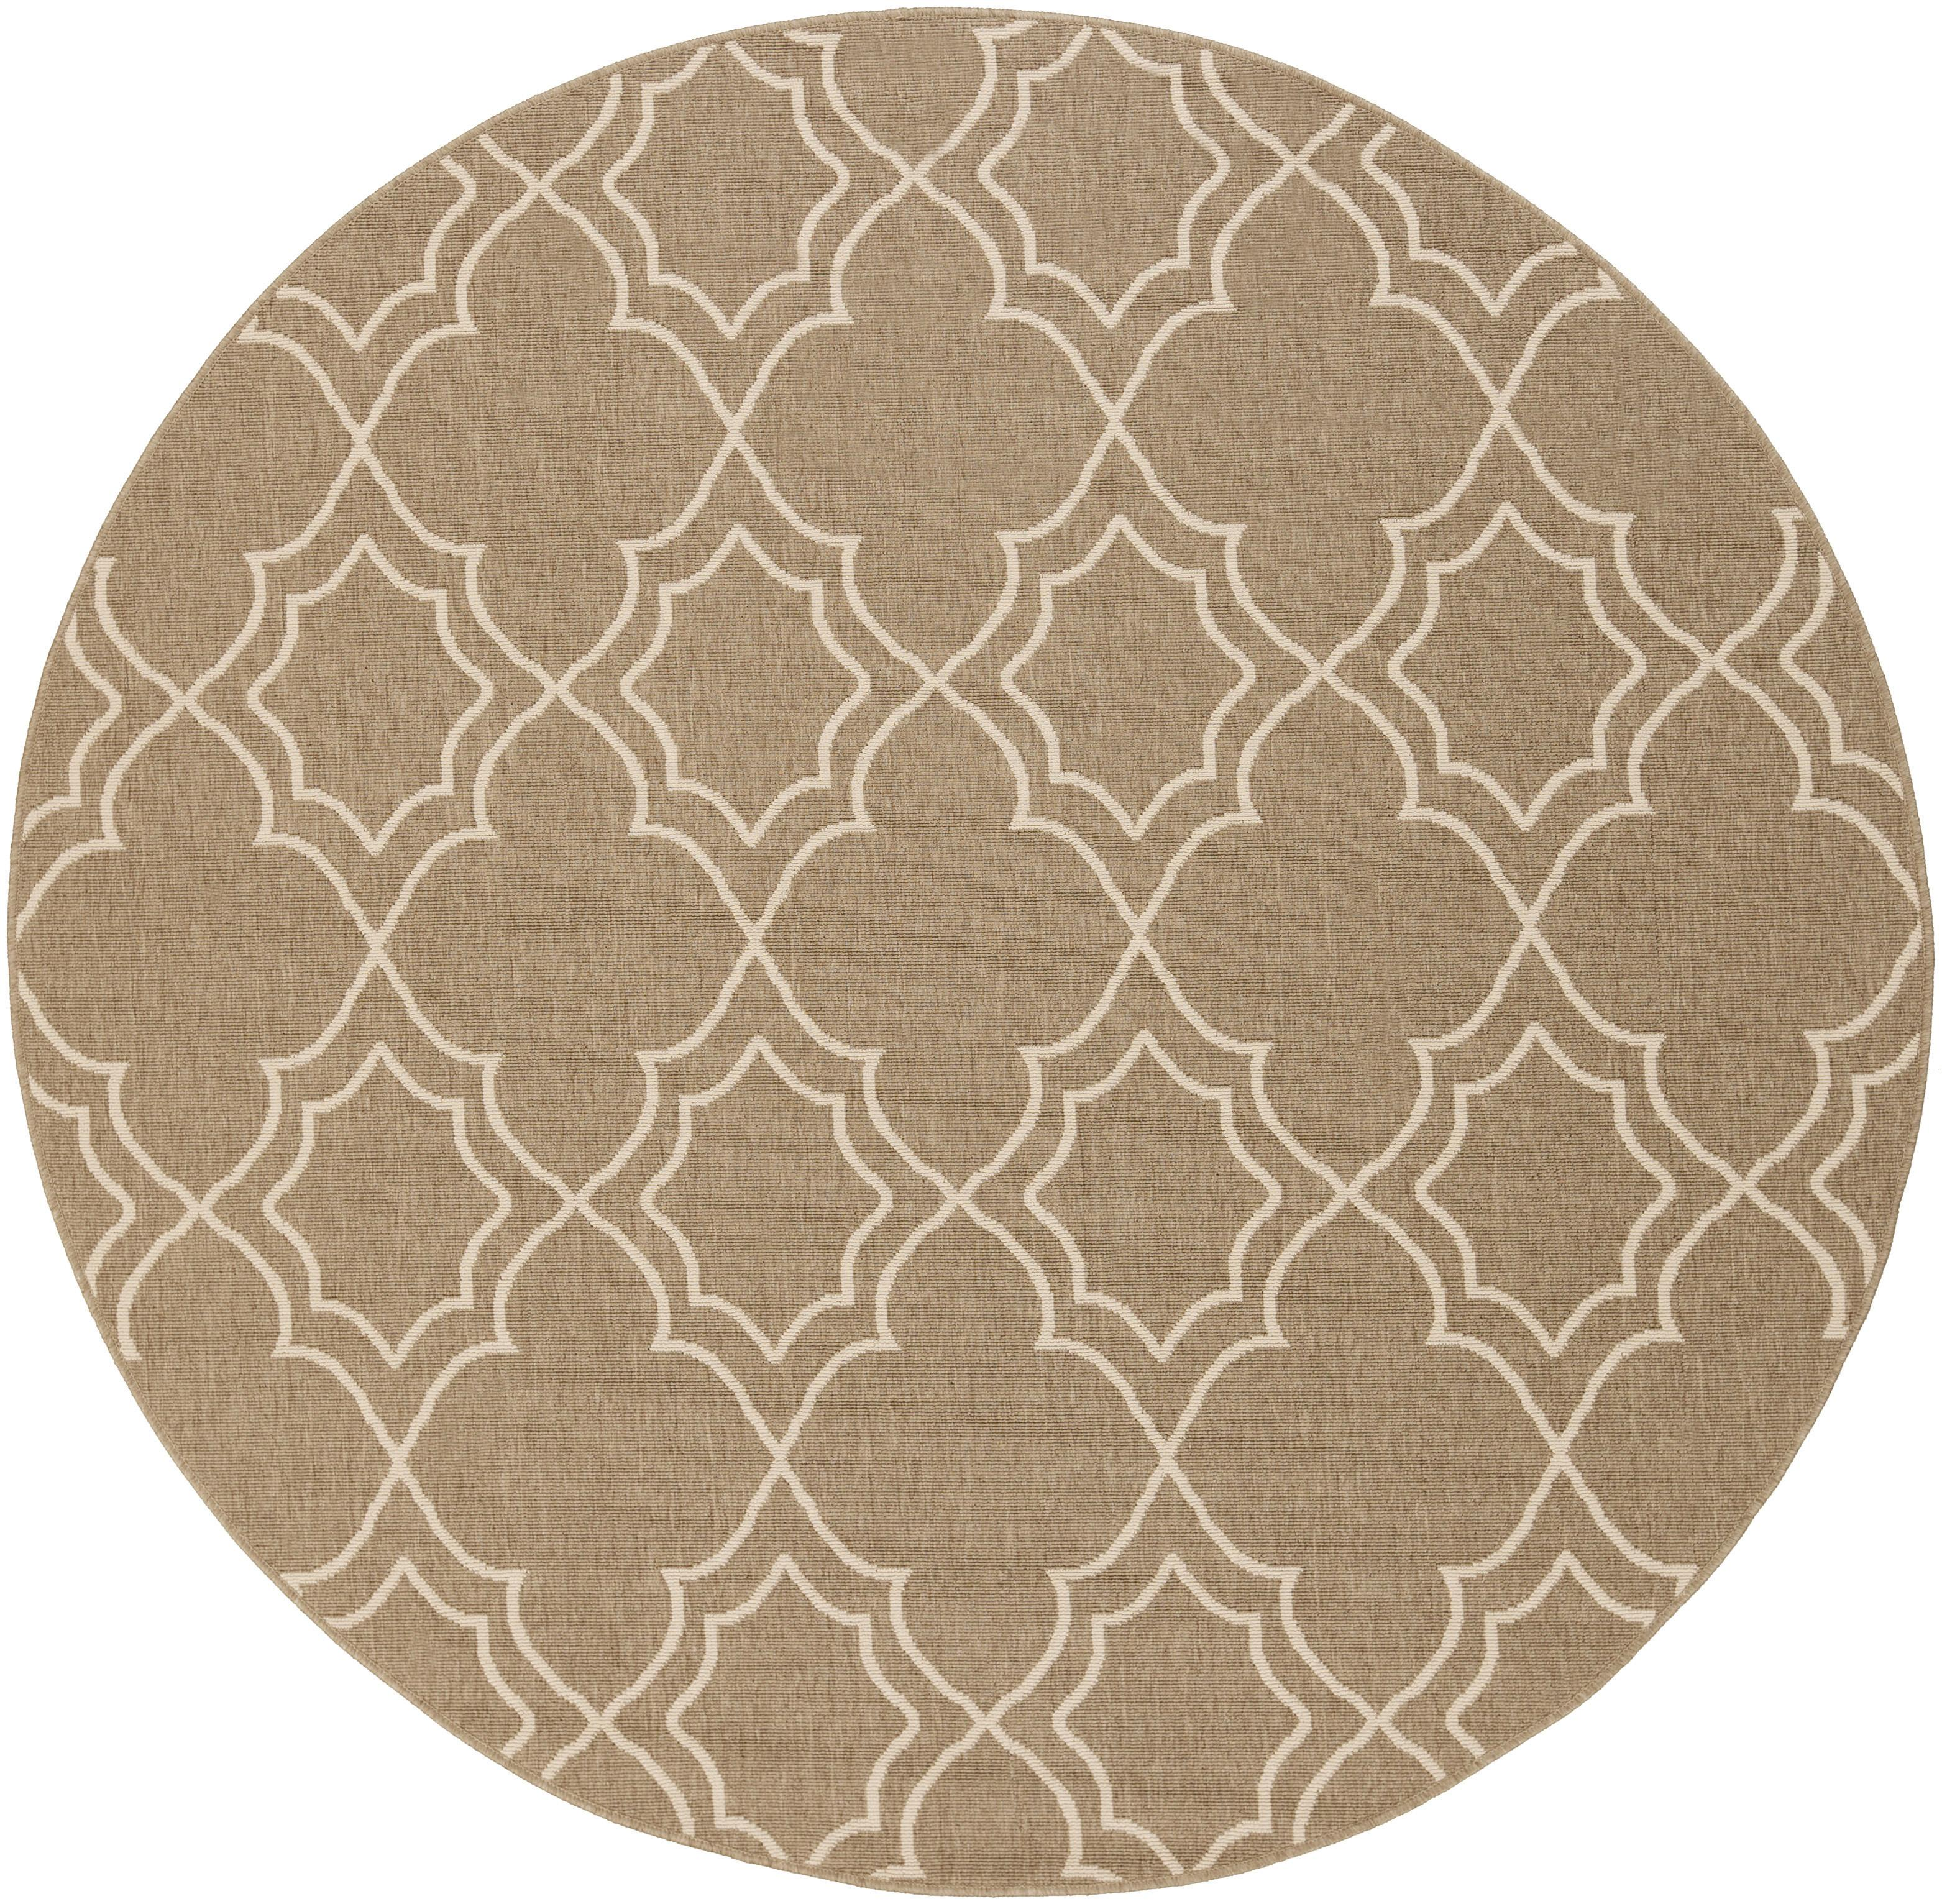 "Surya Rugs Alfresco 8'9"" Round - Item Number: ALF9587-89RD"